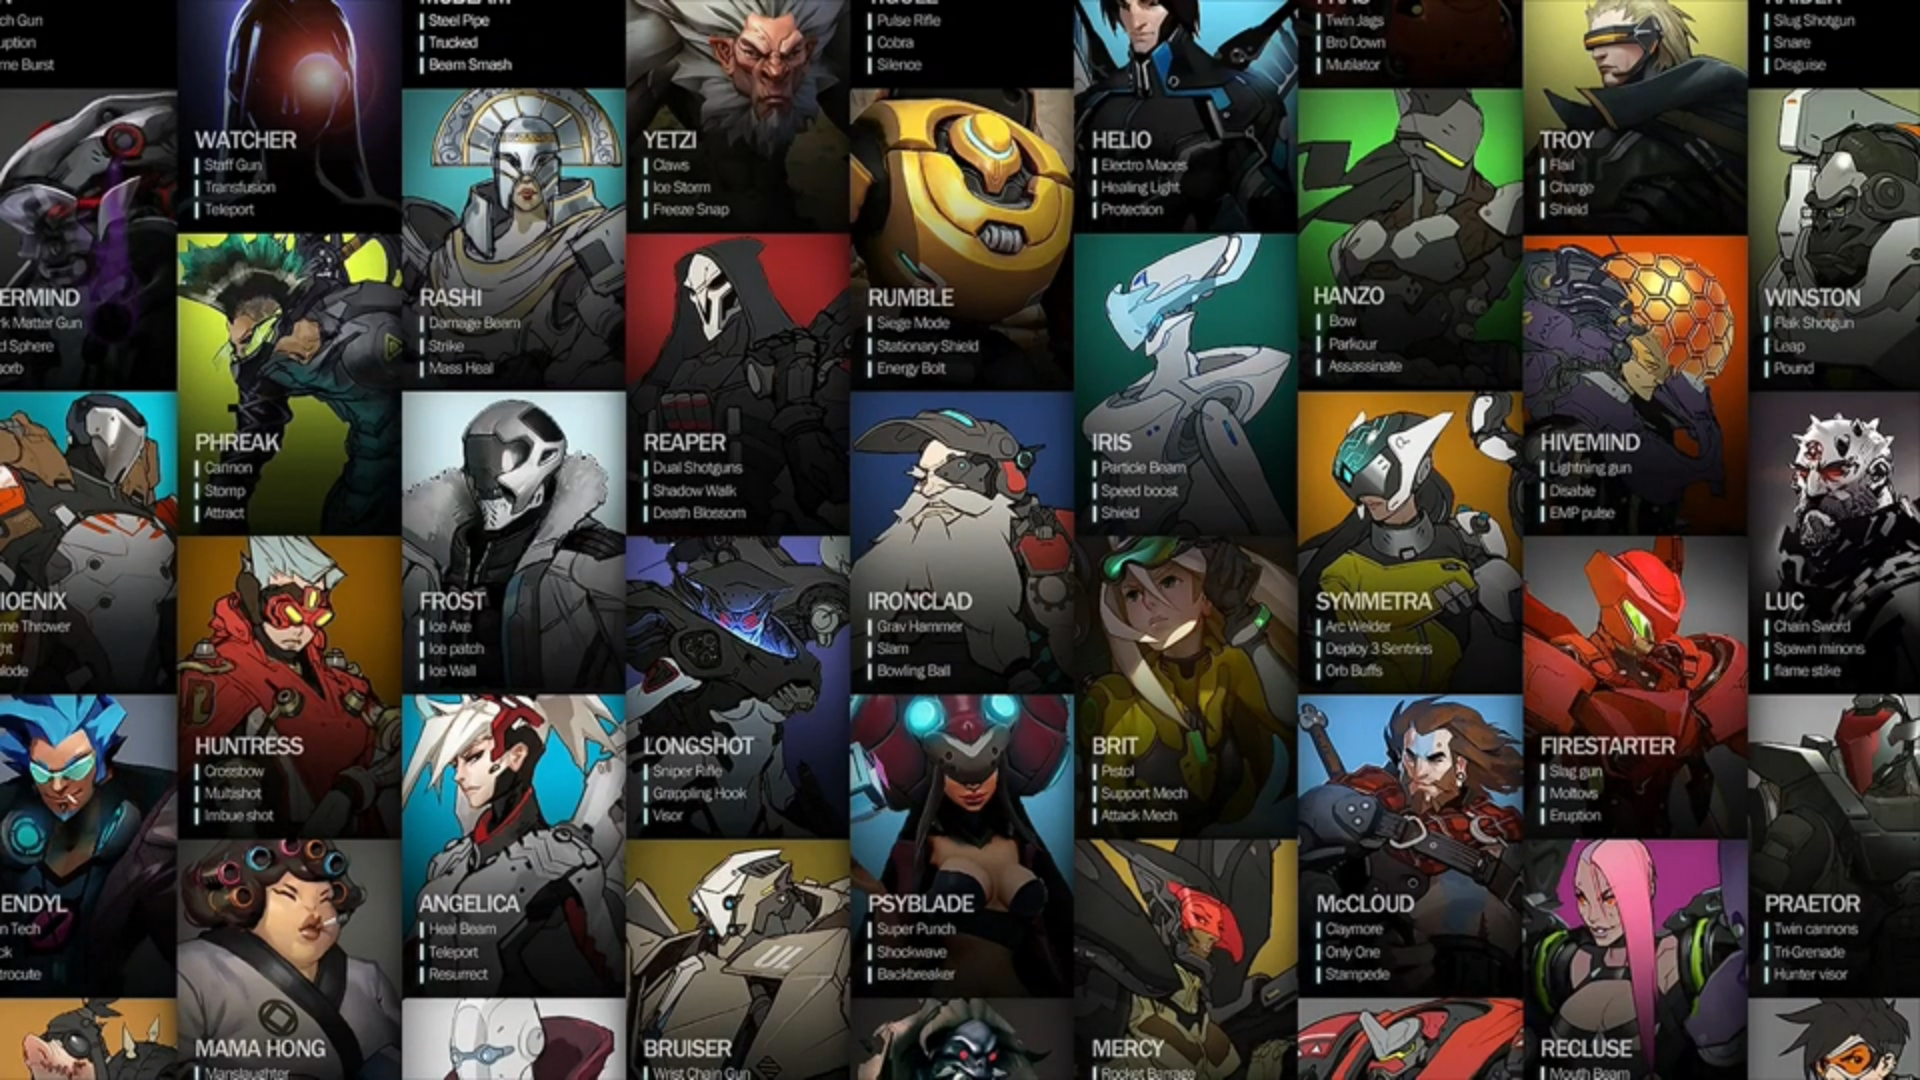 Pubg Hero By Gilbertgraphics: These Images That Were Used In The Original Overwatch